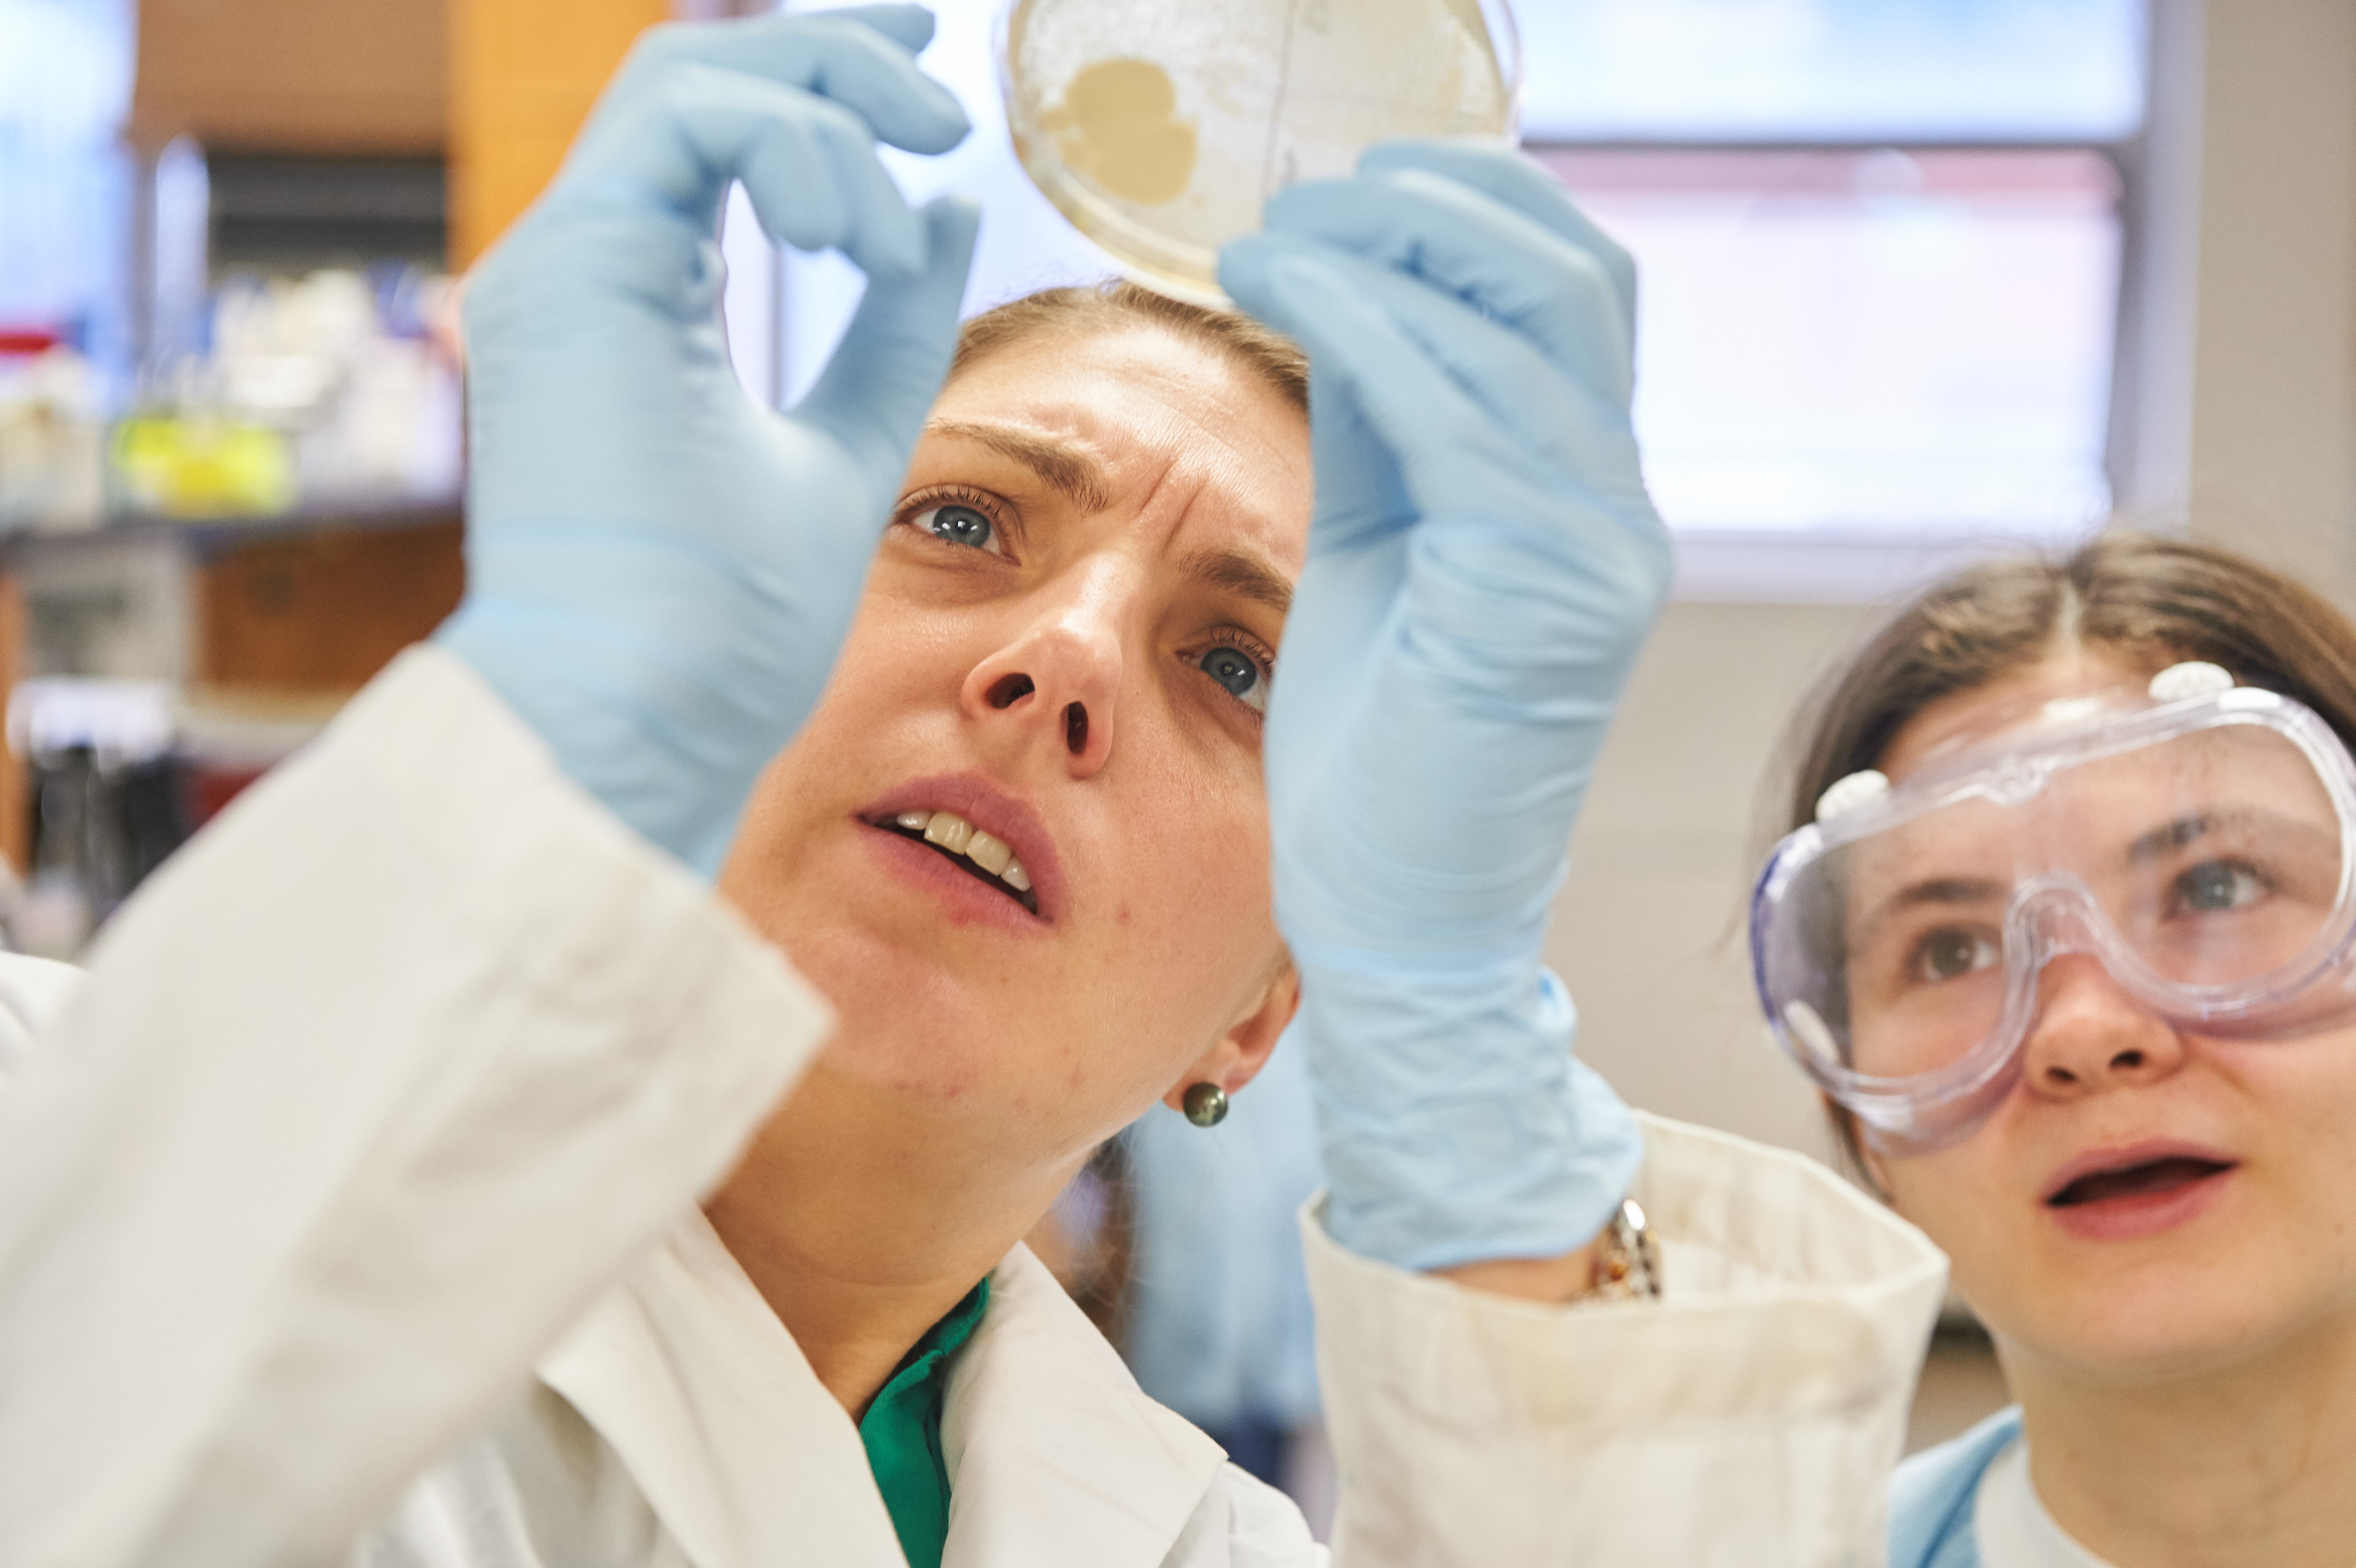 Nichole Broderick, assistant professor of molecular and cell biology, left, and Katherine Tiernan '19 (ENG) look at a bacteria culture plate in a microbiology lab at the Torrey Life Sciences Building on Nov. 10, 2015. (Peter Morenus/UConn Photo)